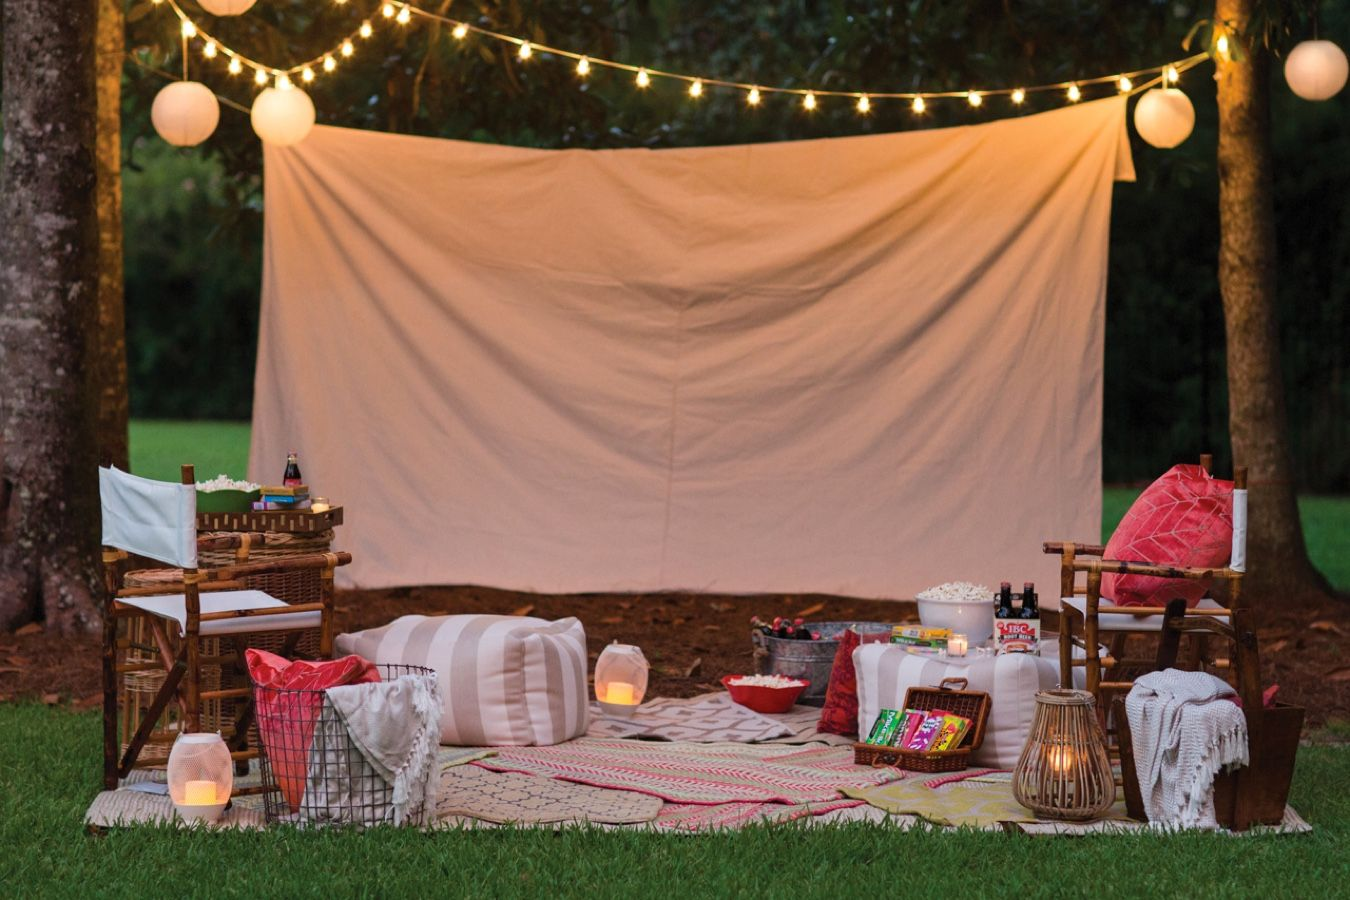 Everything You Need To Host The Best Backyard Movie Night